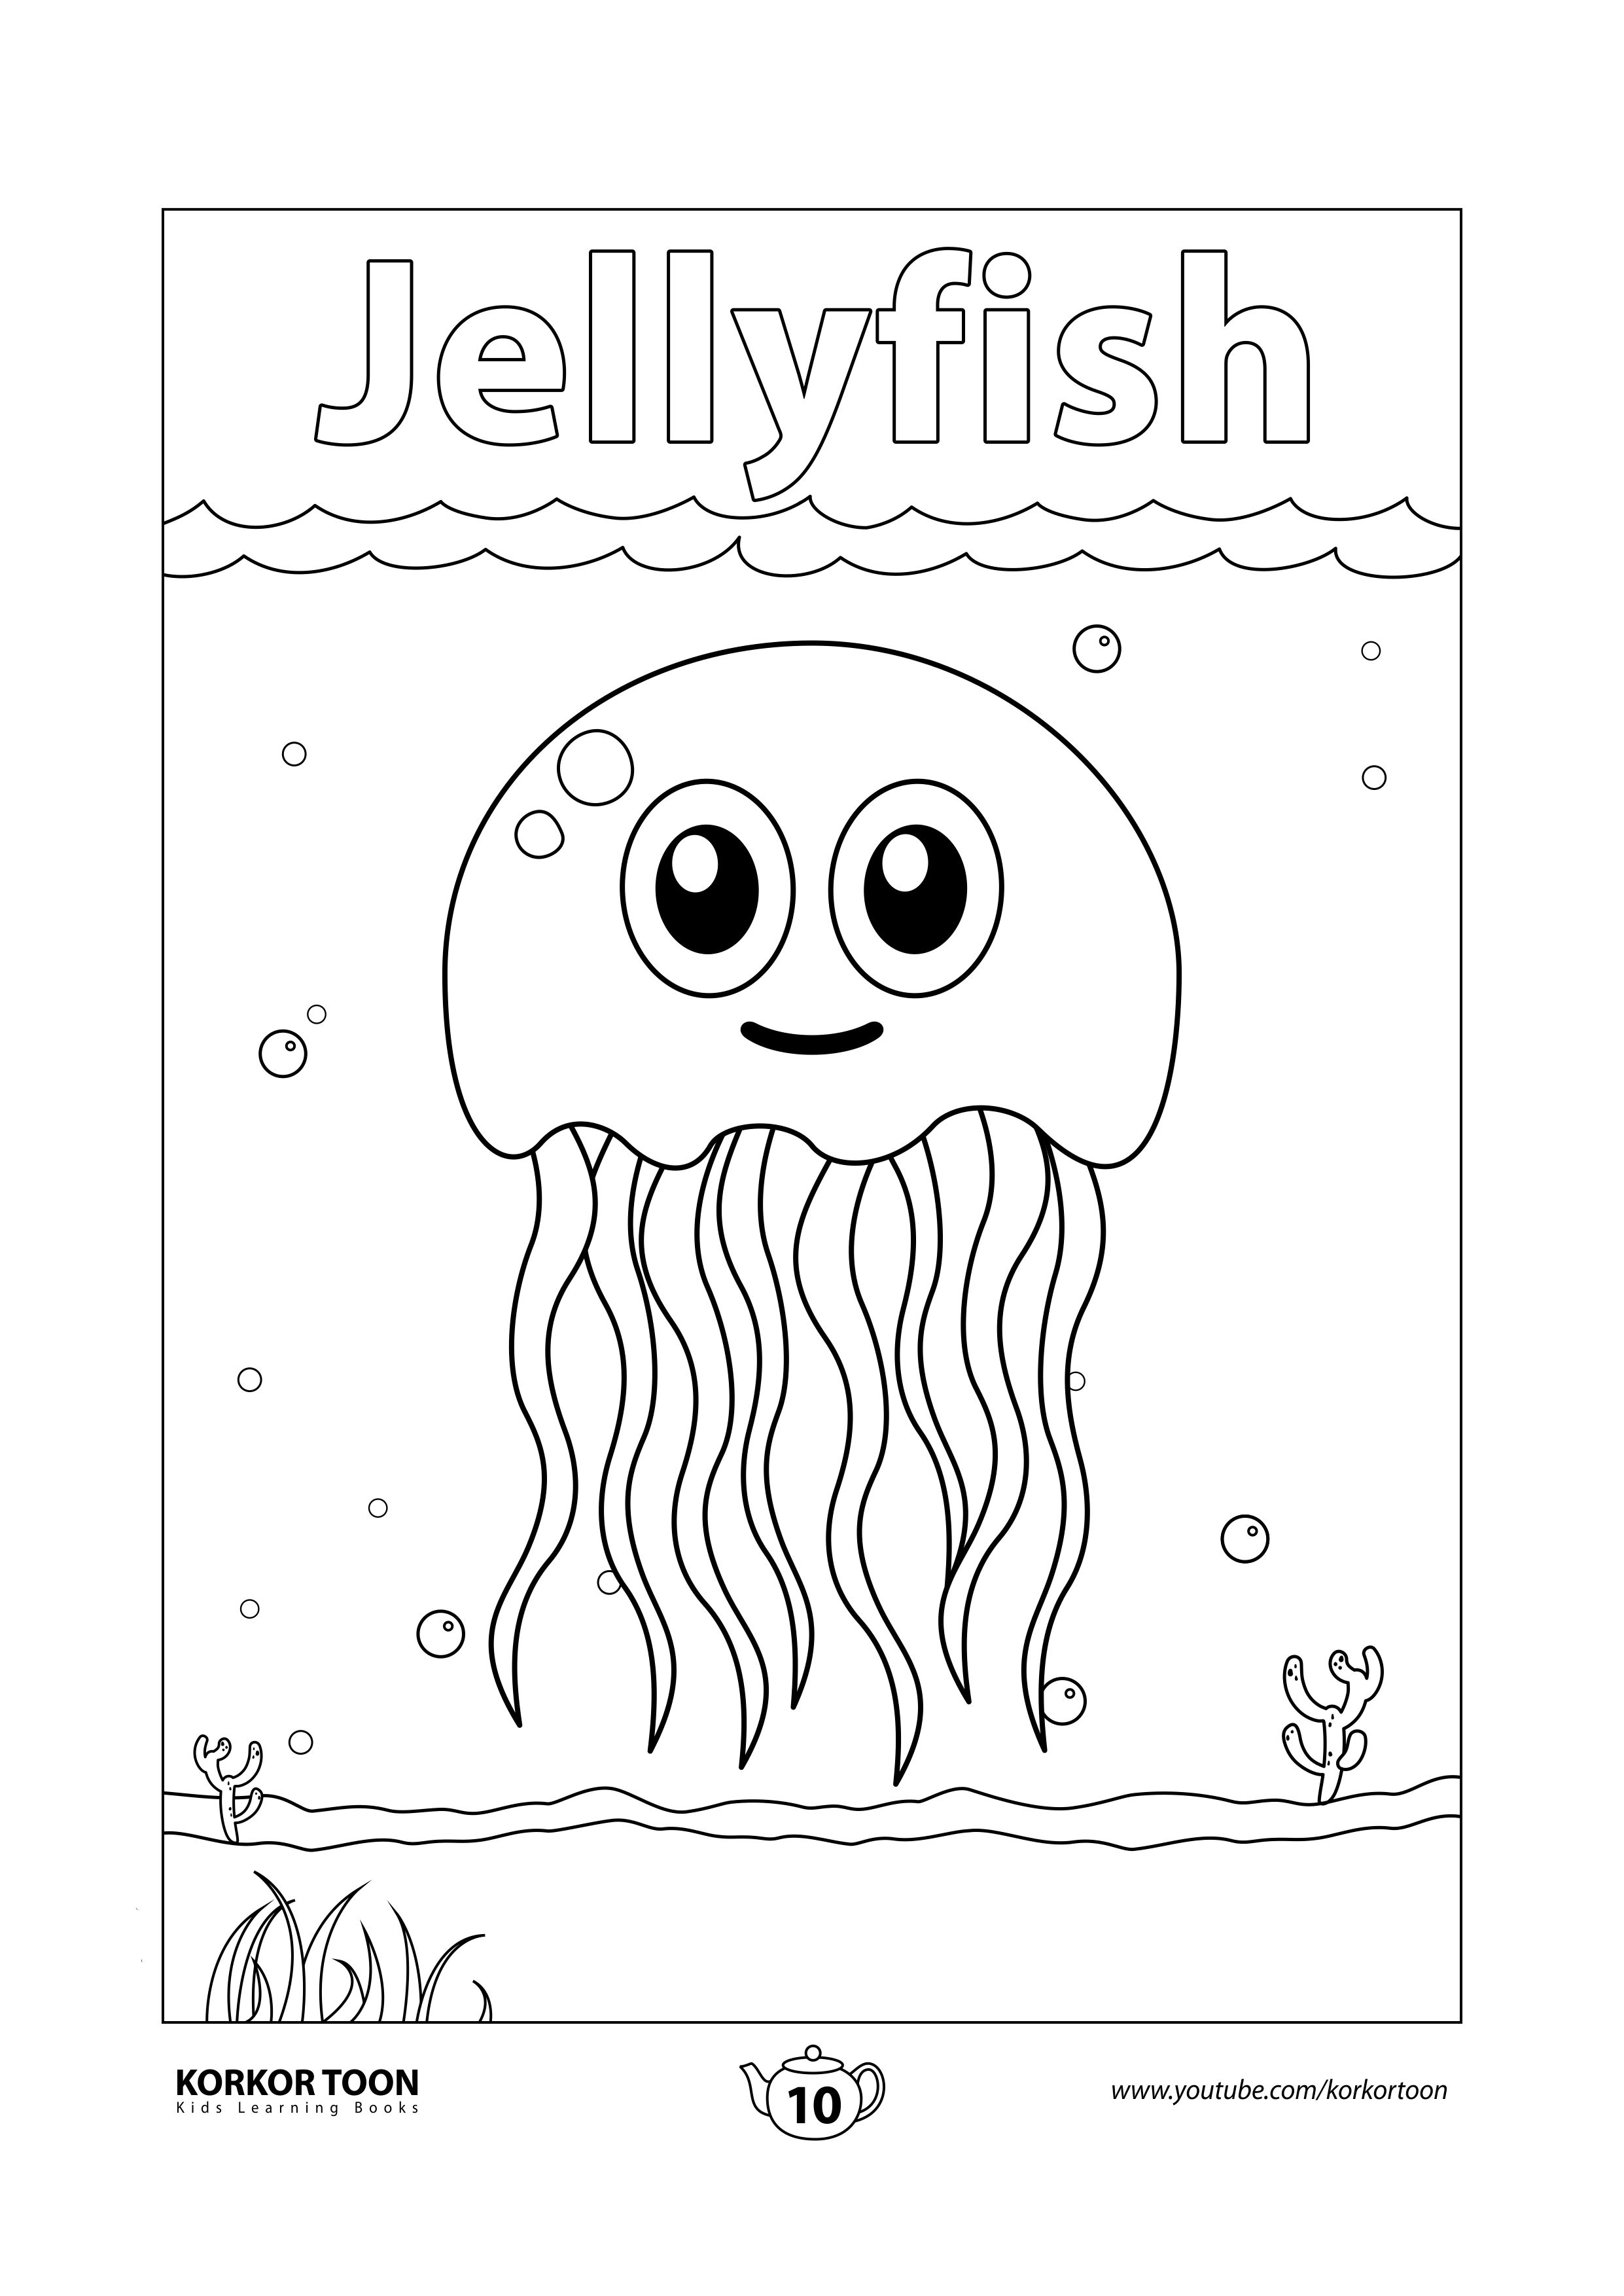 Jellyfish Coloring Page Sea Animals Coloring Book For Kids Coloring Books Animal Coloring Books Animal Books